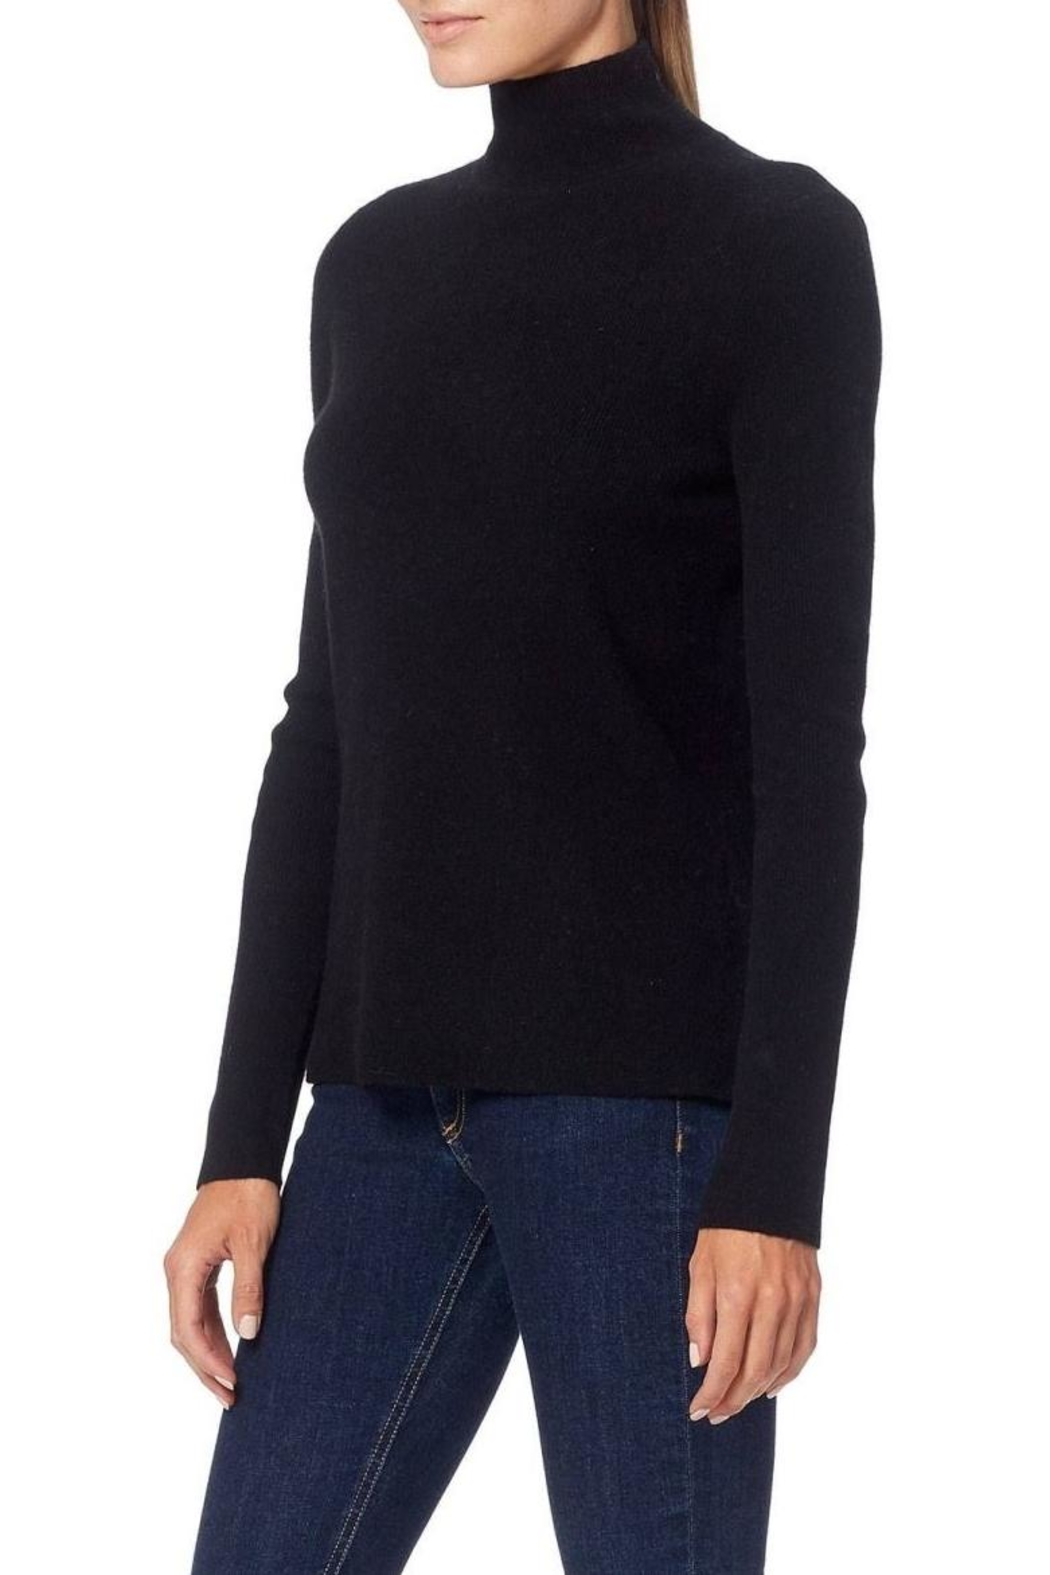 360 Cashmere Open-Back Turtleneck Sweater - Front Full Image